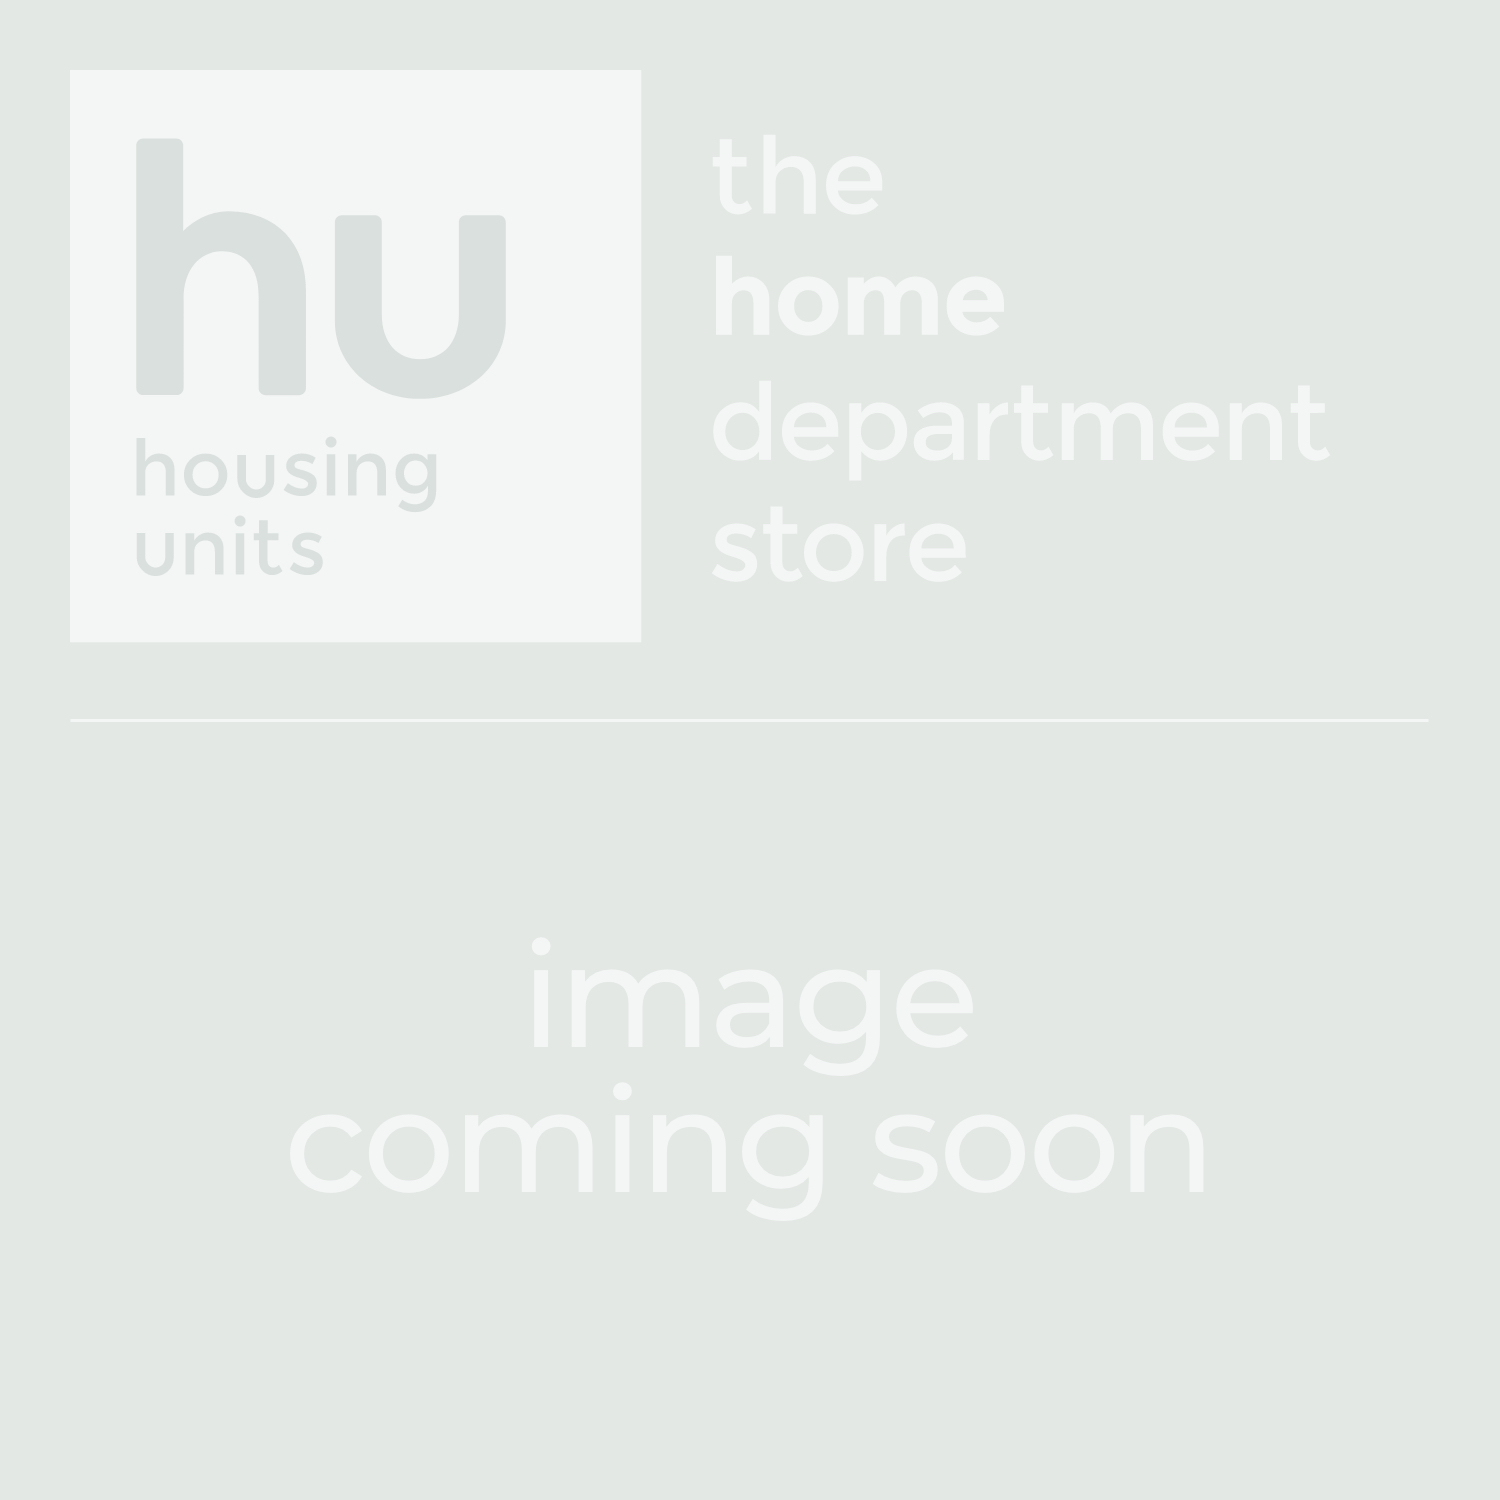 Bugatti Acqua 0.75ltr Kitchen Storage Jar | Housing Units